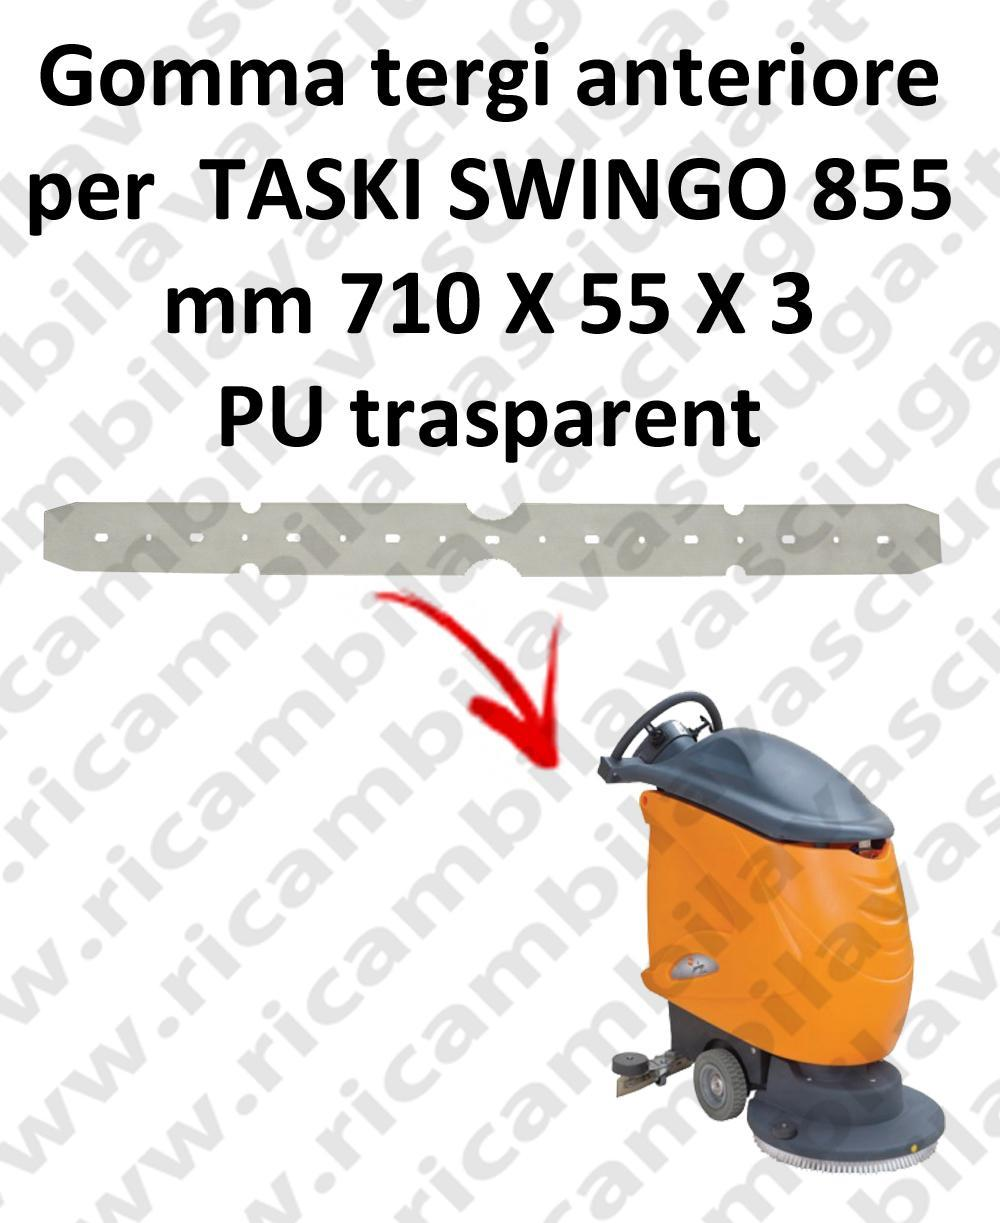 SWINGO 855  Front Squeegee rubber for TASKI accessories, reaplacement, spare parts,o scrubber dryer squeegee